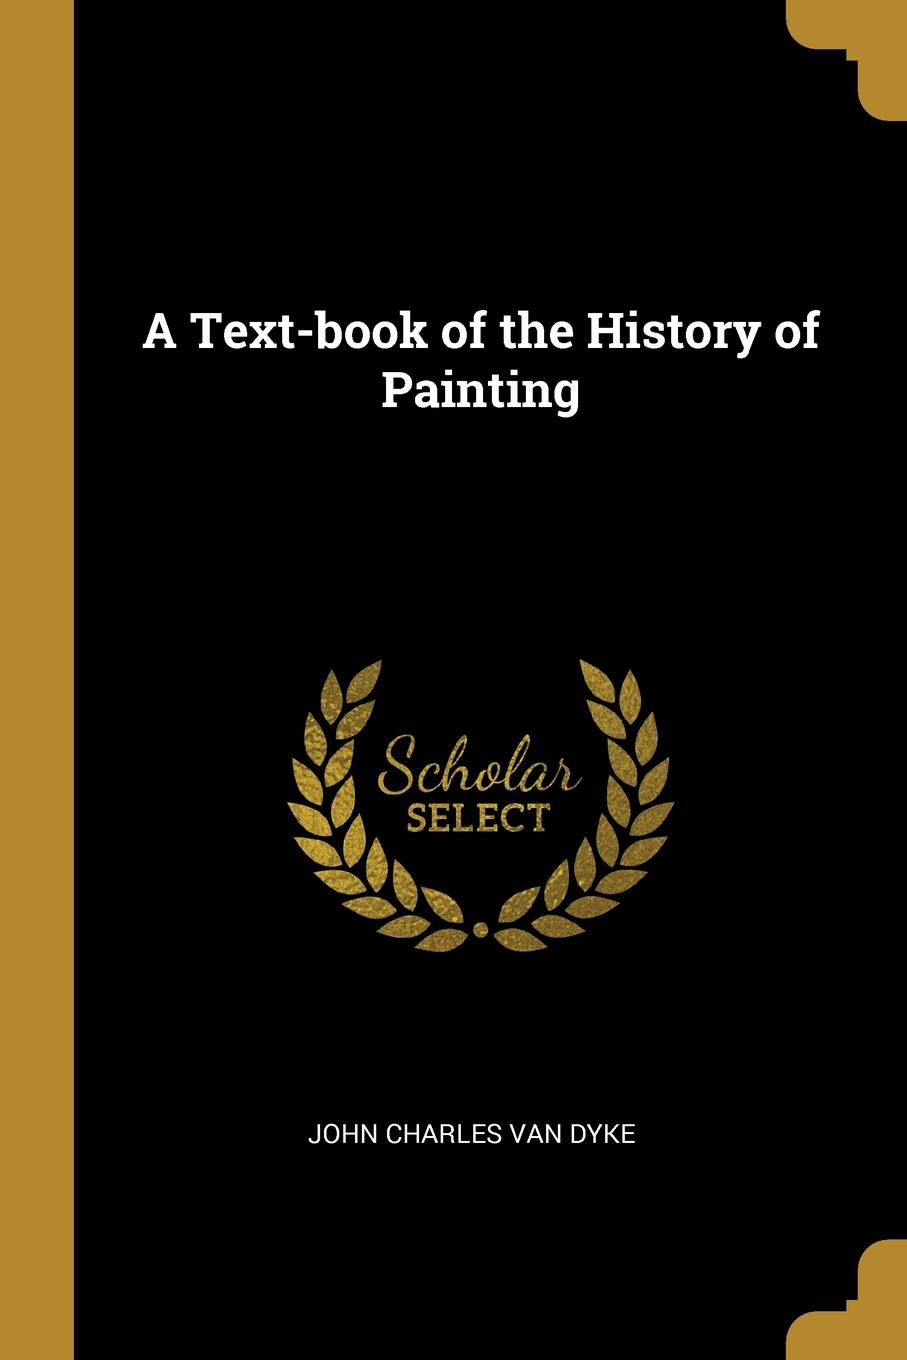 John Charles Van Dyke. A Text-book of the History of Painting